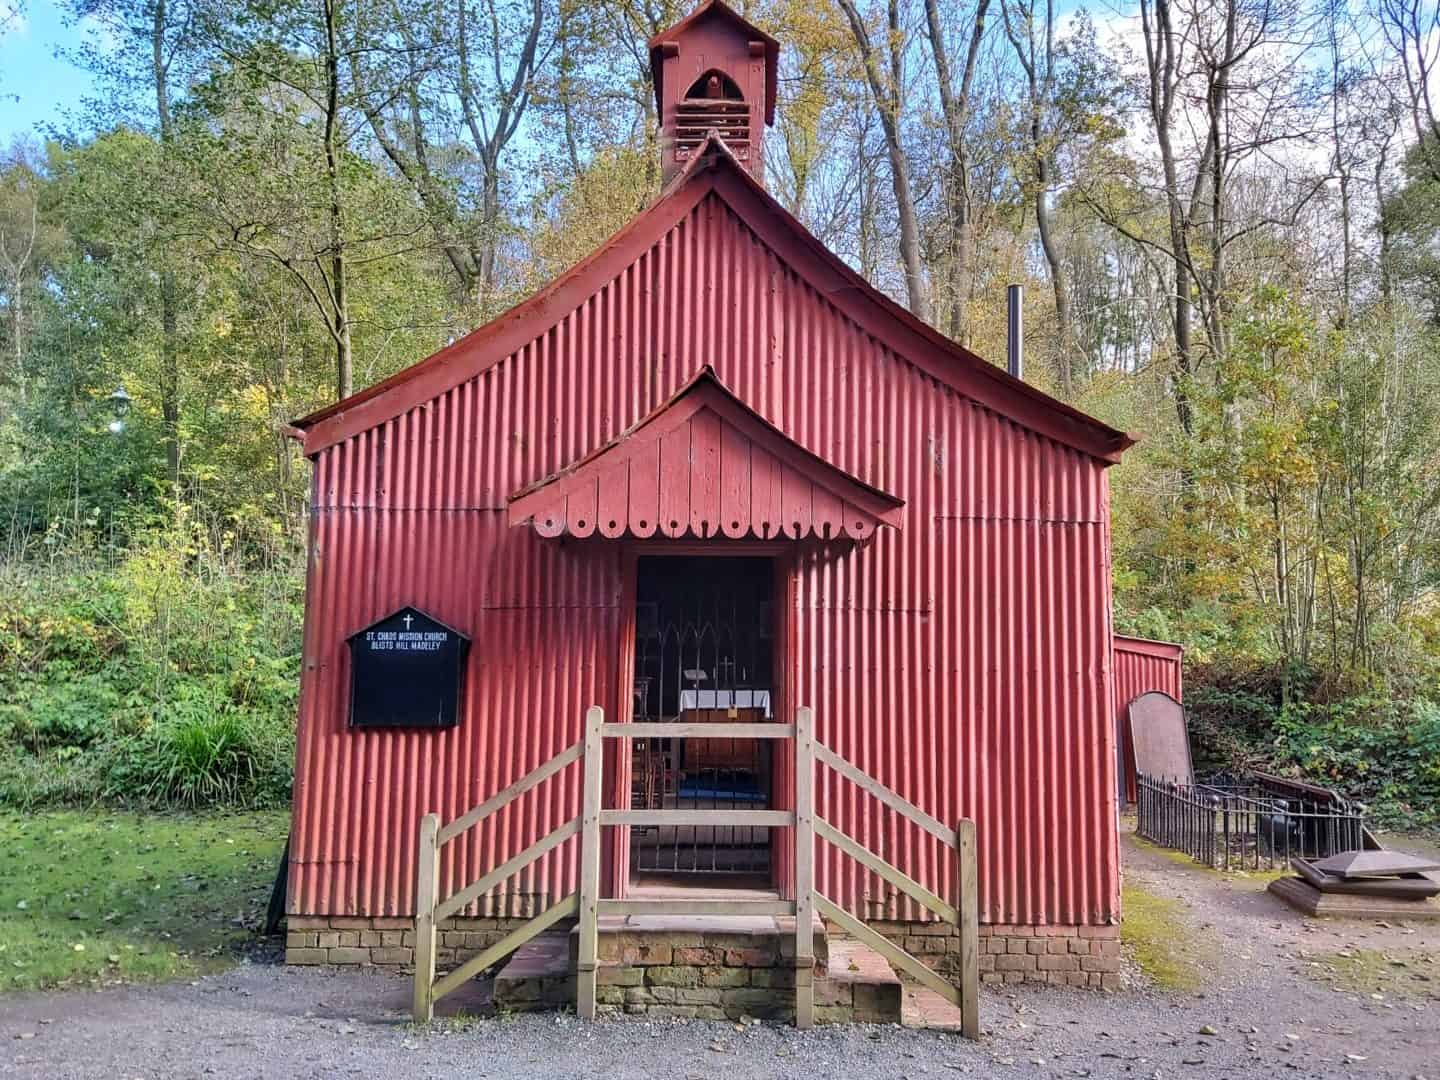 Red corrugated iron church